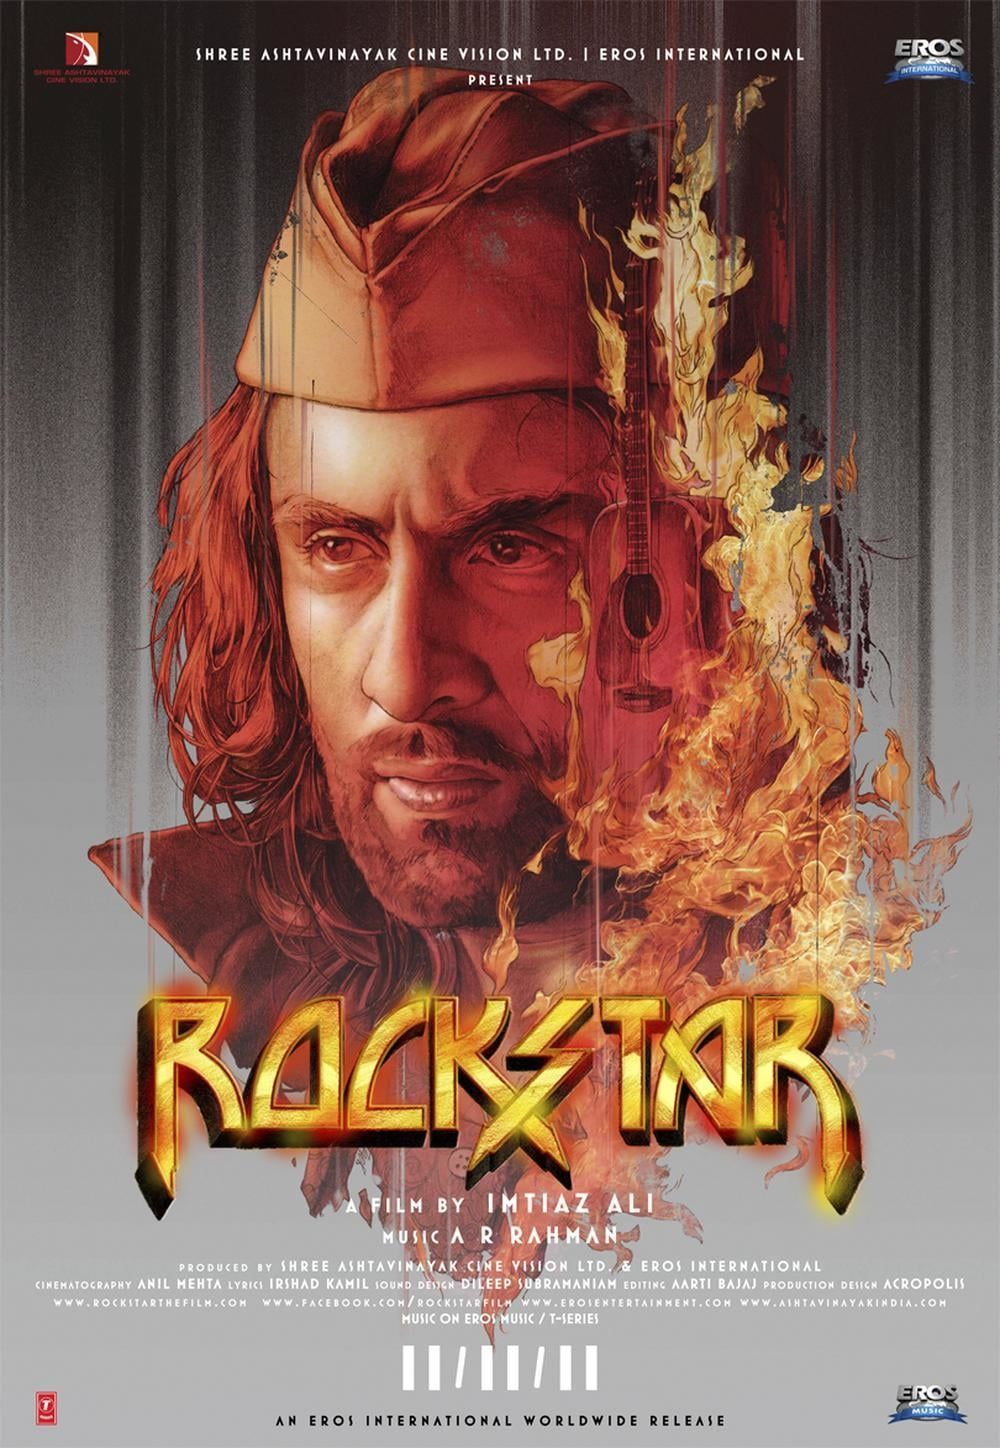 download rockstar FULL MOVIE hd1080p sub english annie